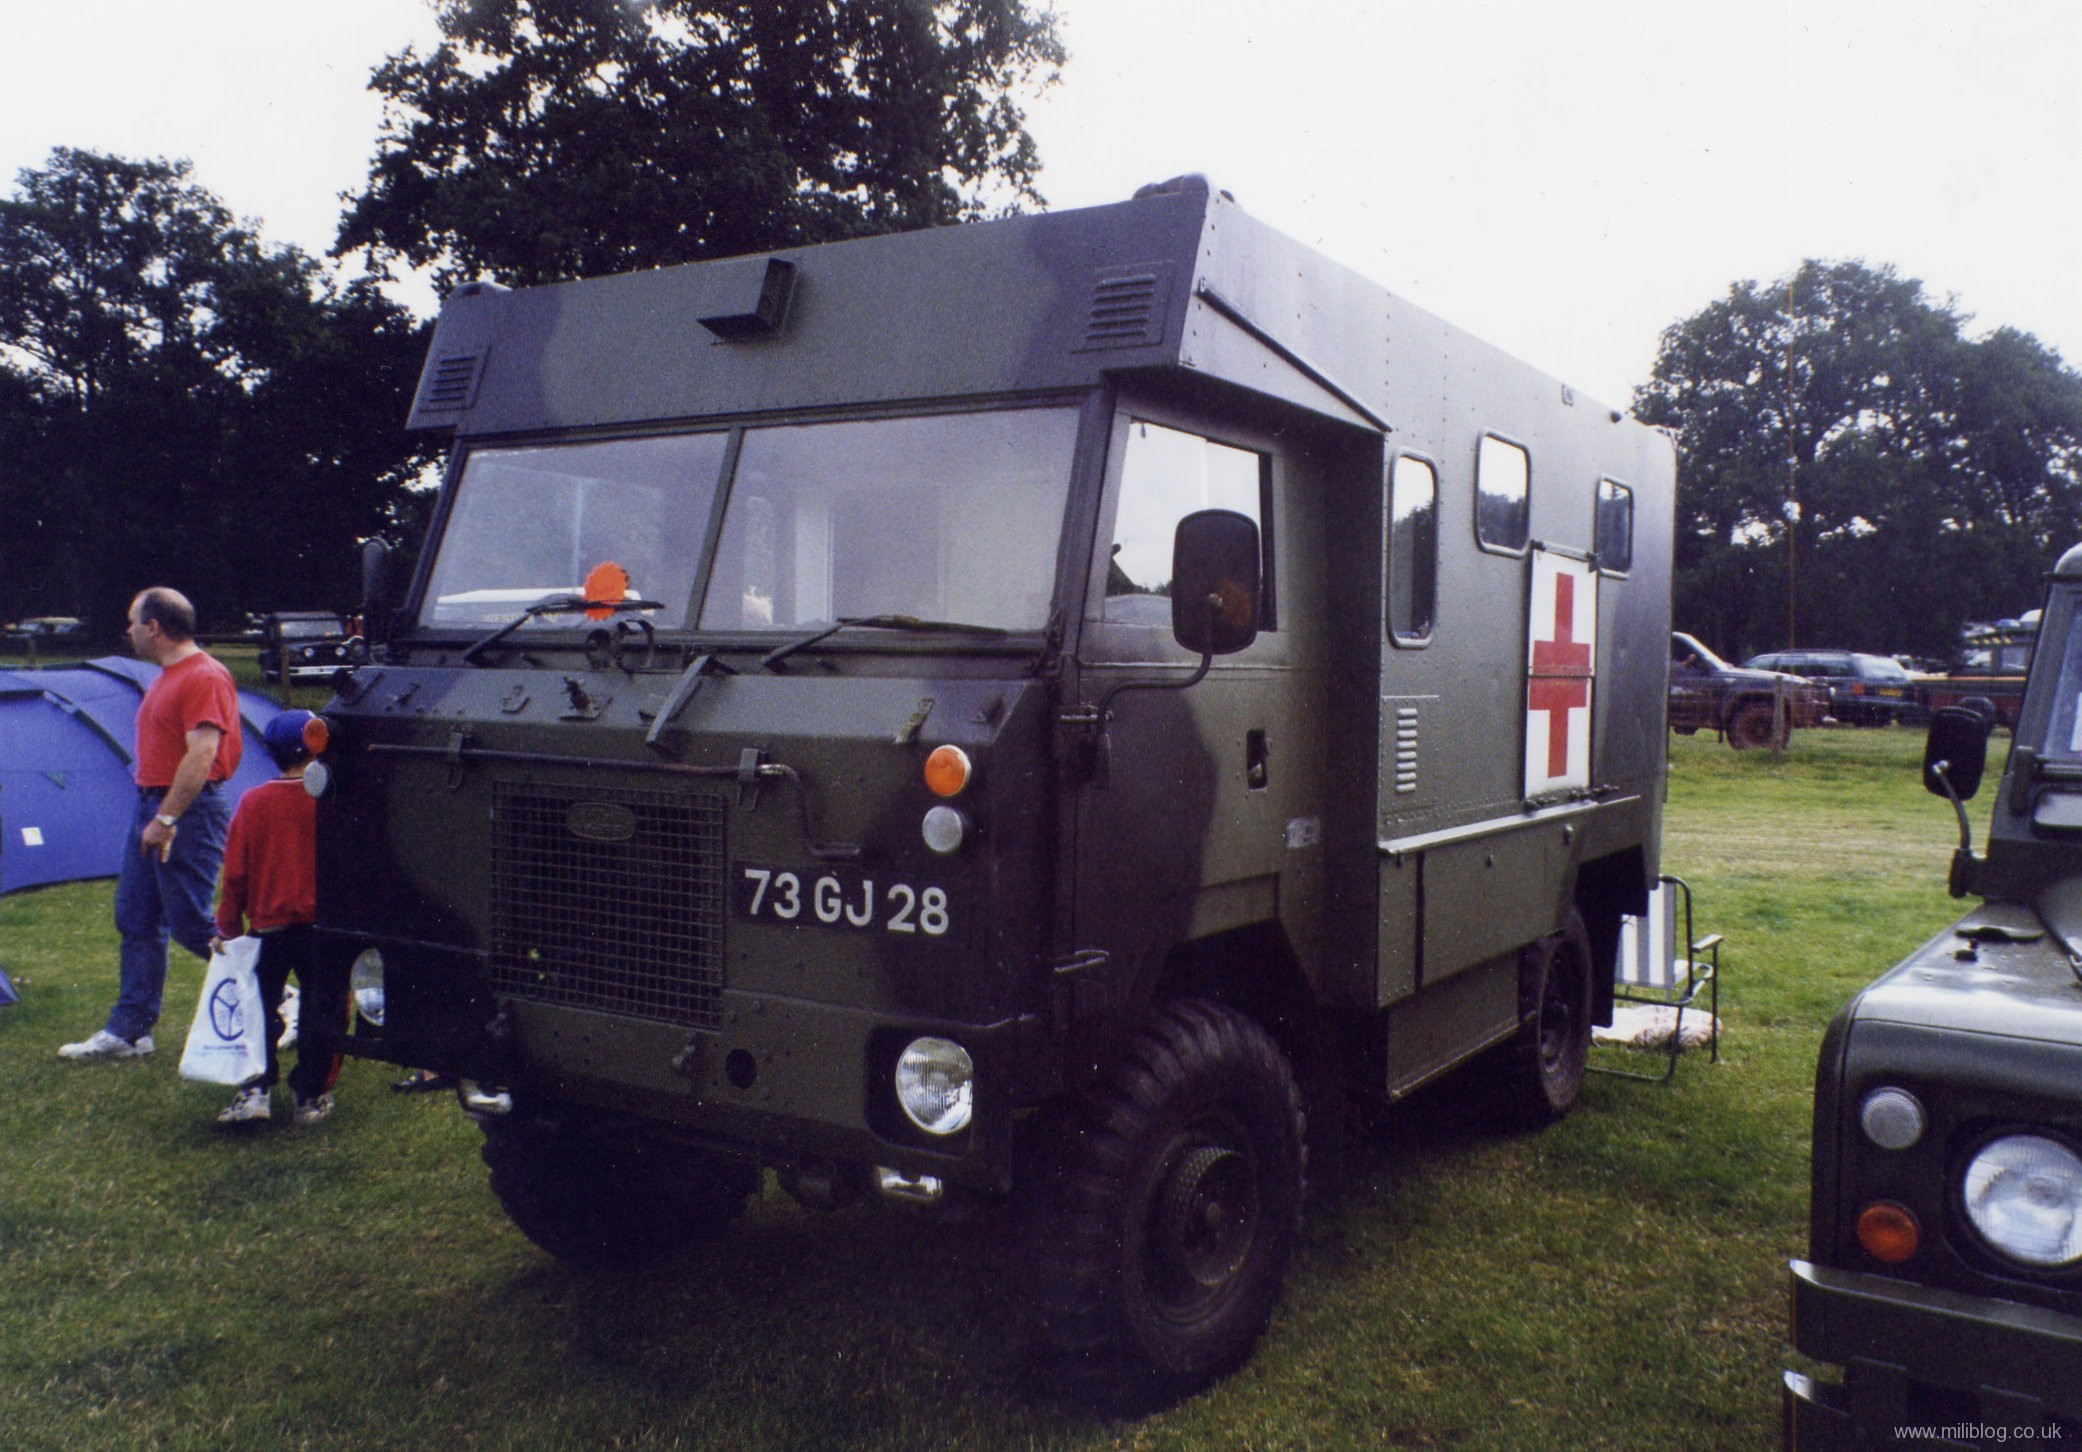 military items military vehicles military trucks military land rover 101 ambulance 73 gj 28